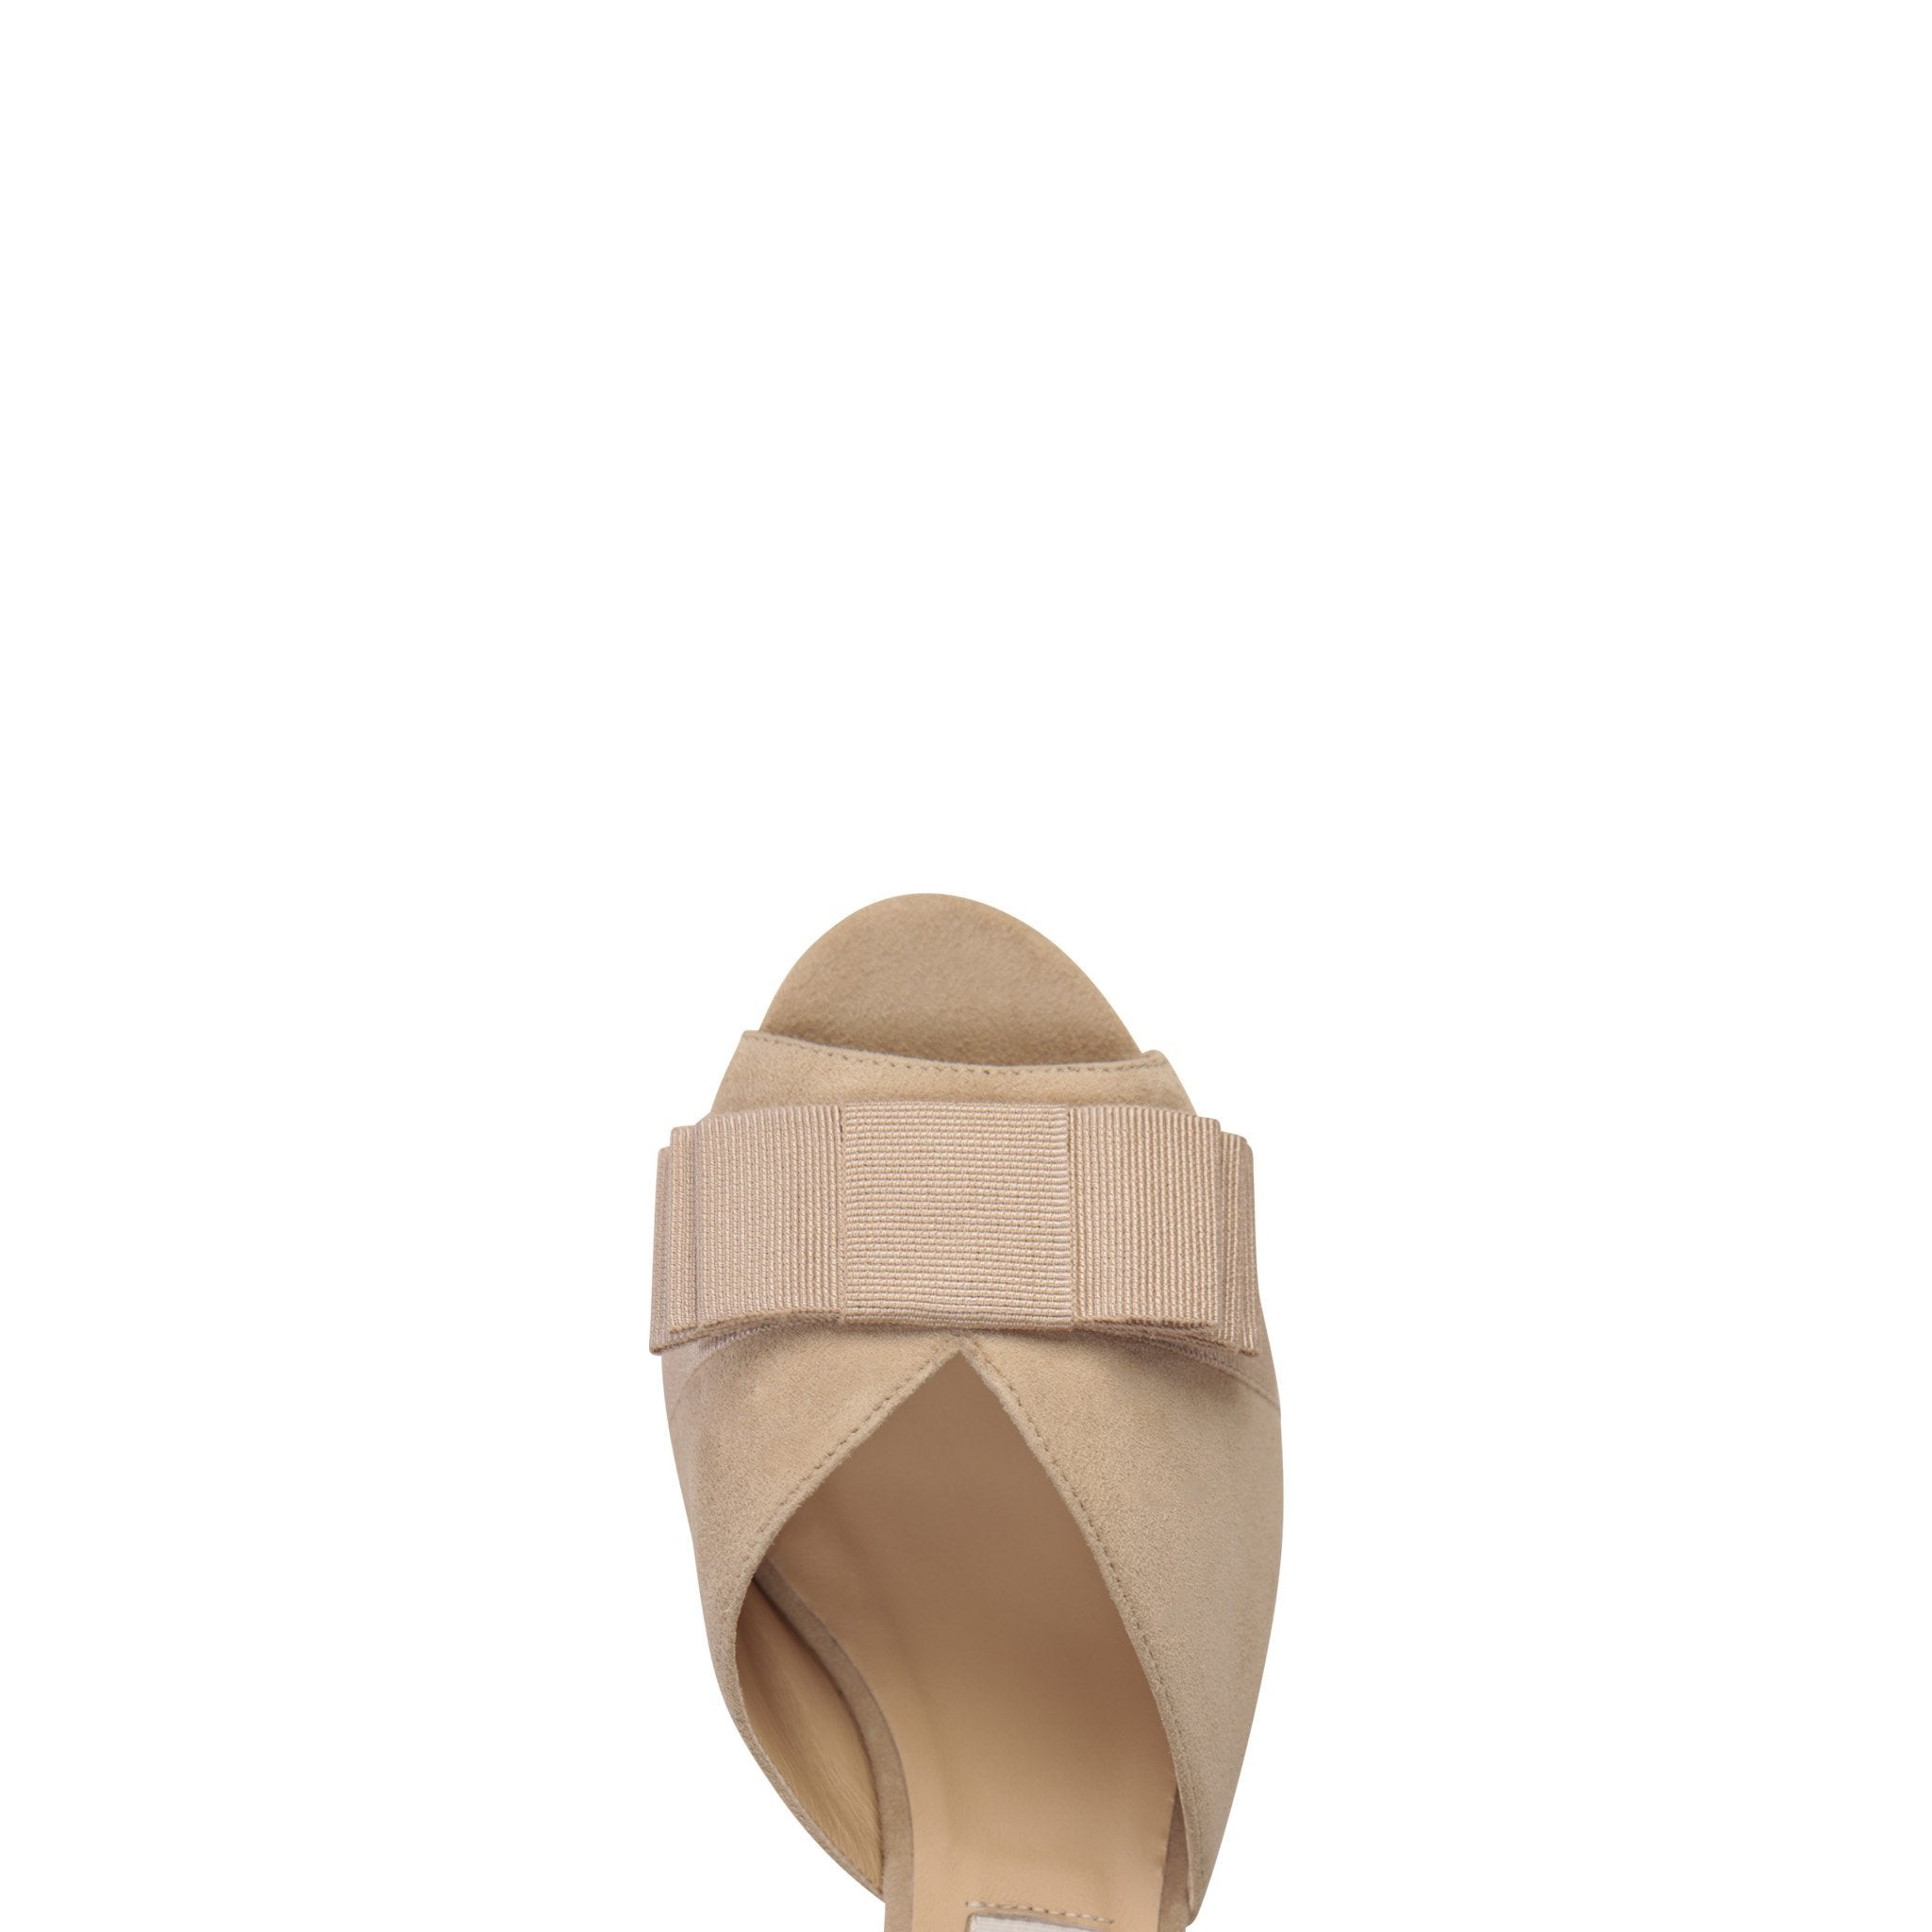 MASSA - Velukid Tan + Grosgrain Tan Bow, VIAJIYU - Women's Hand Made Sustainable Luxury Shoes. Made in Italy. Made to Order.